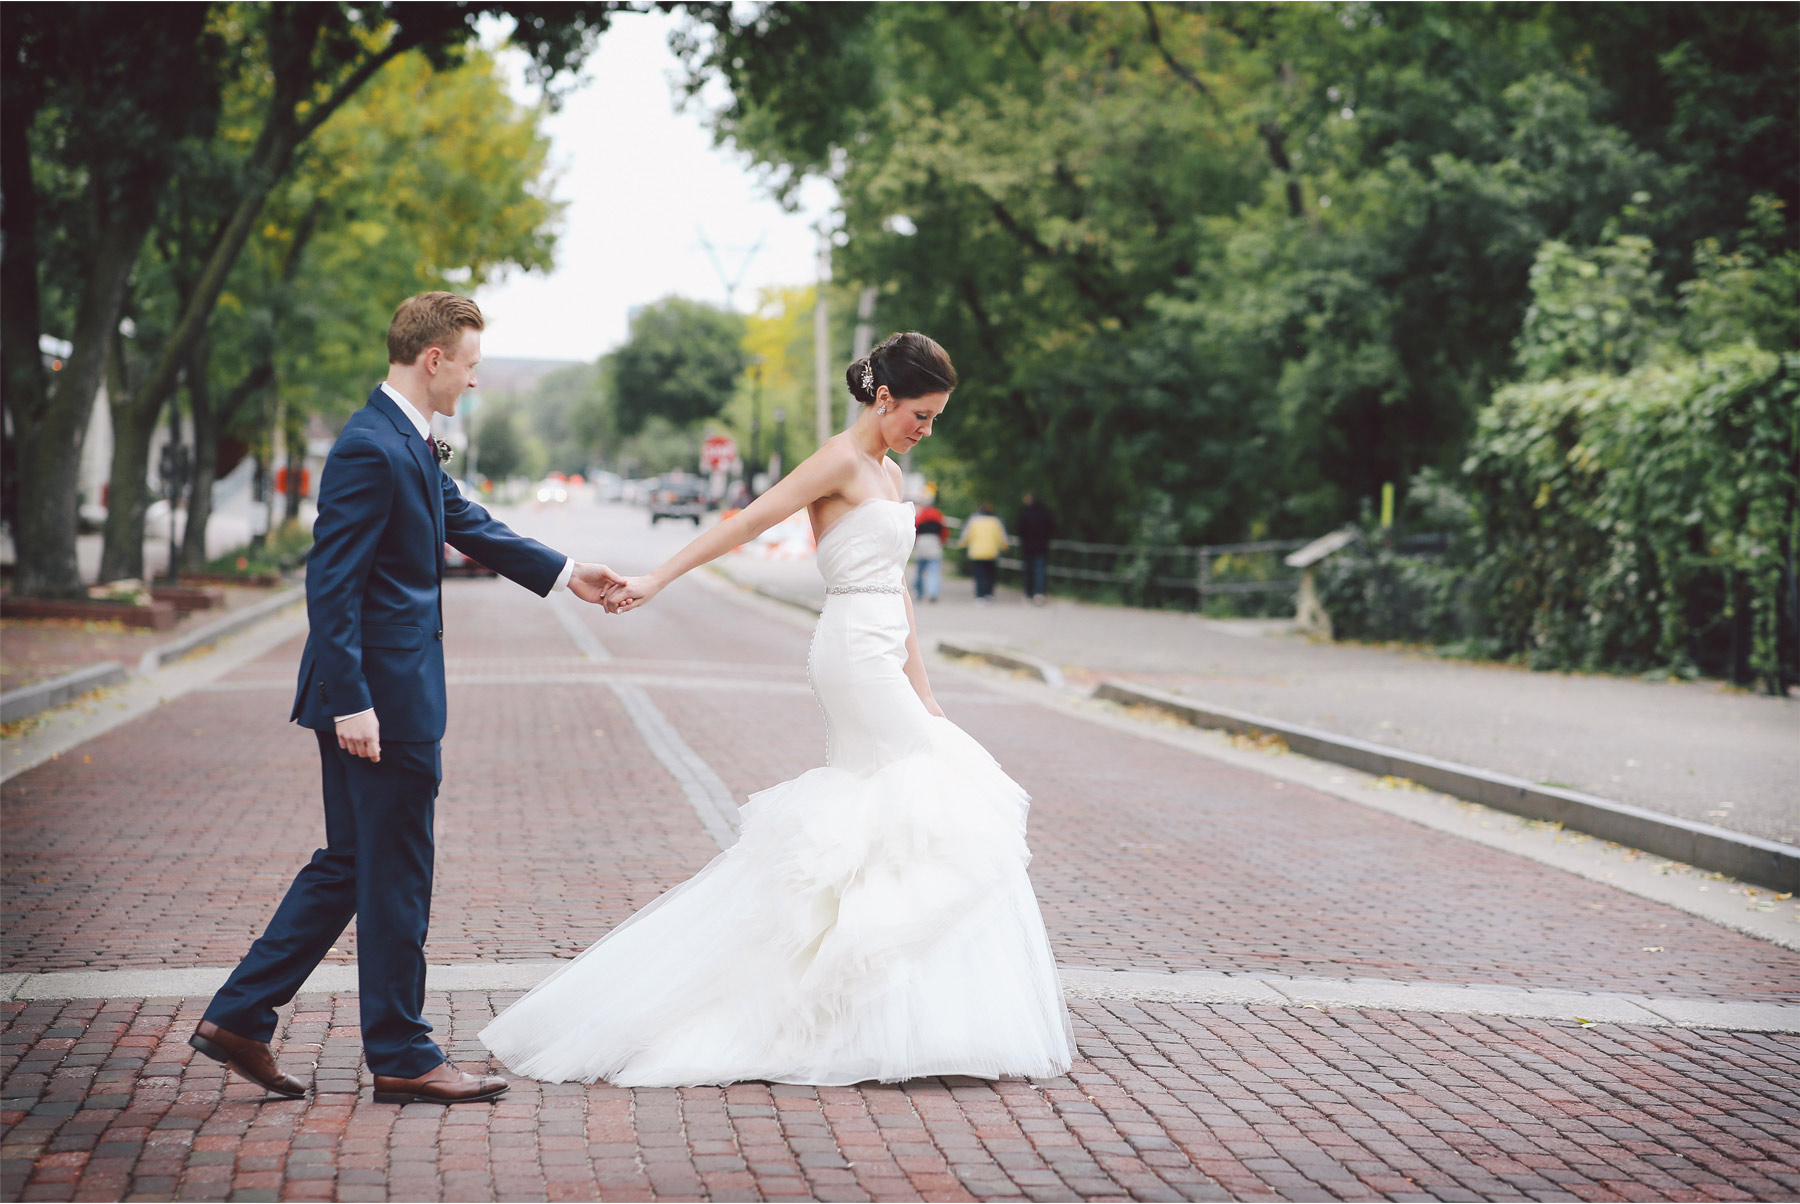 04-Minneapolis-Minnesota-Wedding-Photography-by-Vick-Photography-First-Look-Saint-Anthony-Main-Callie-and-Reed.jpg